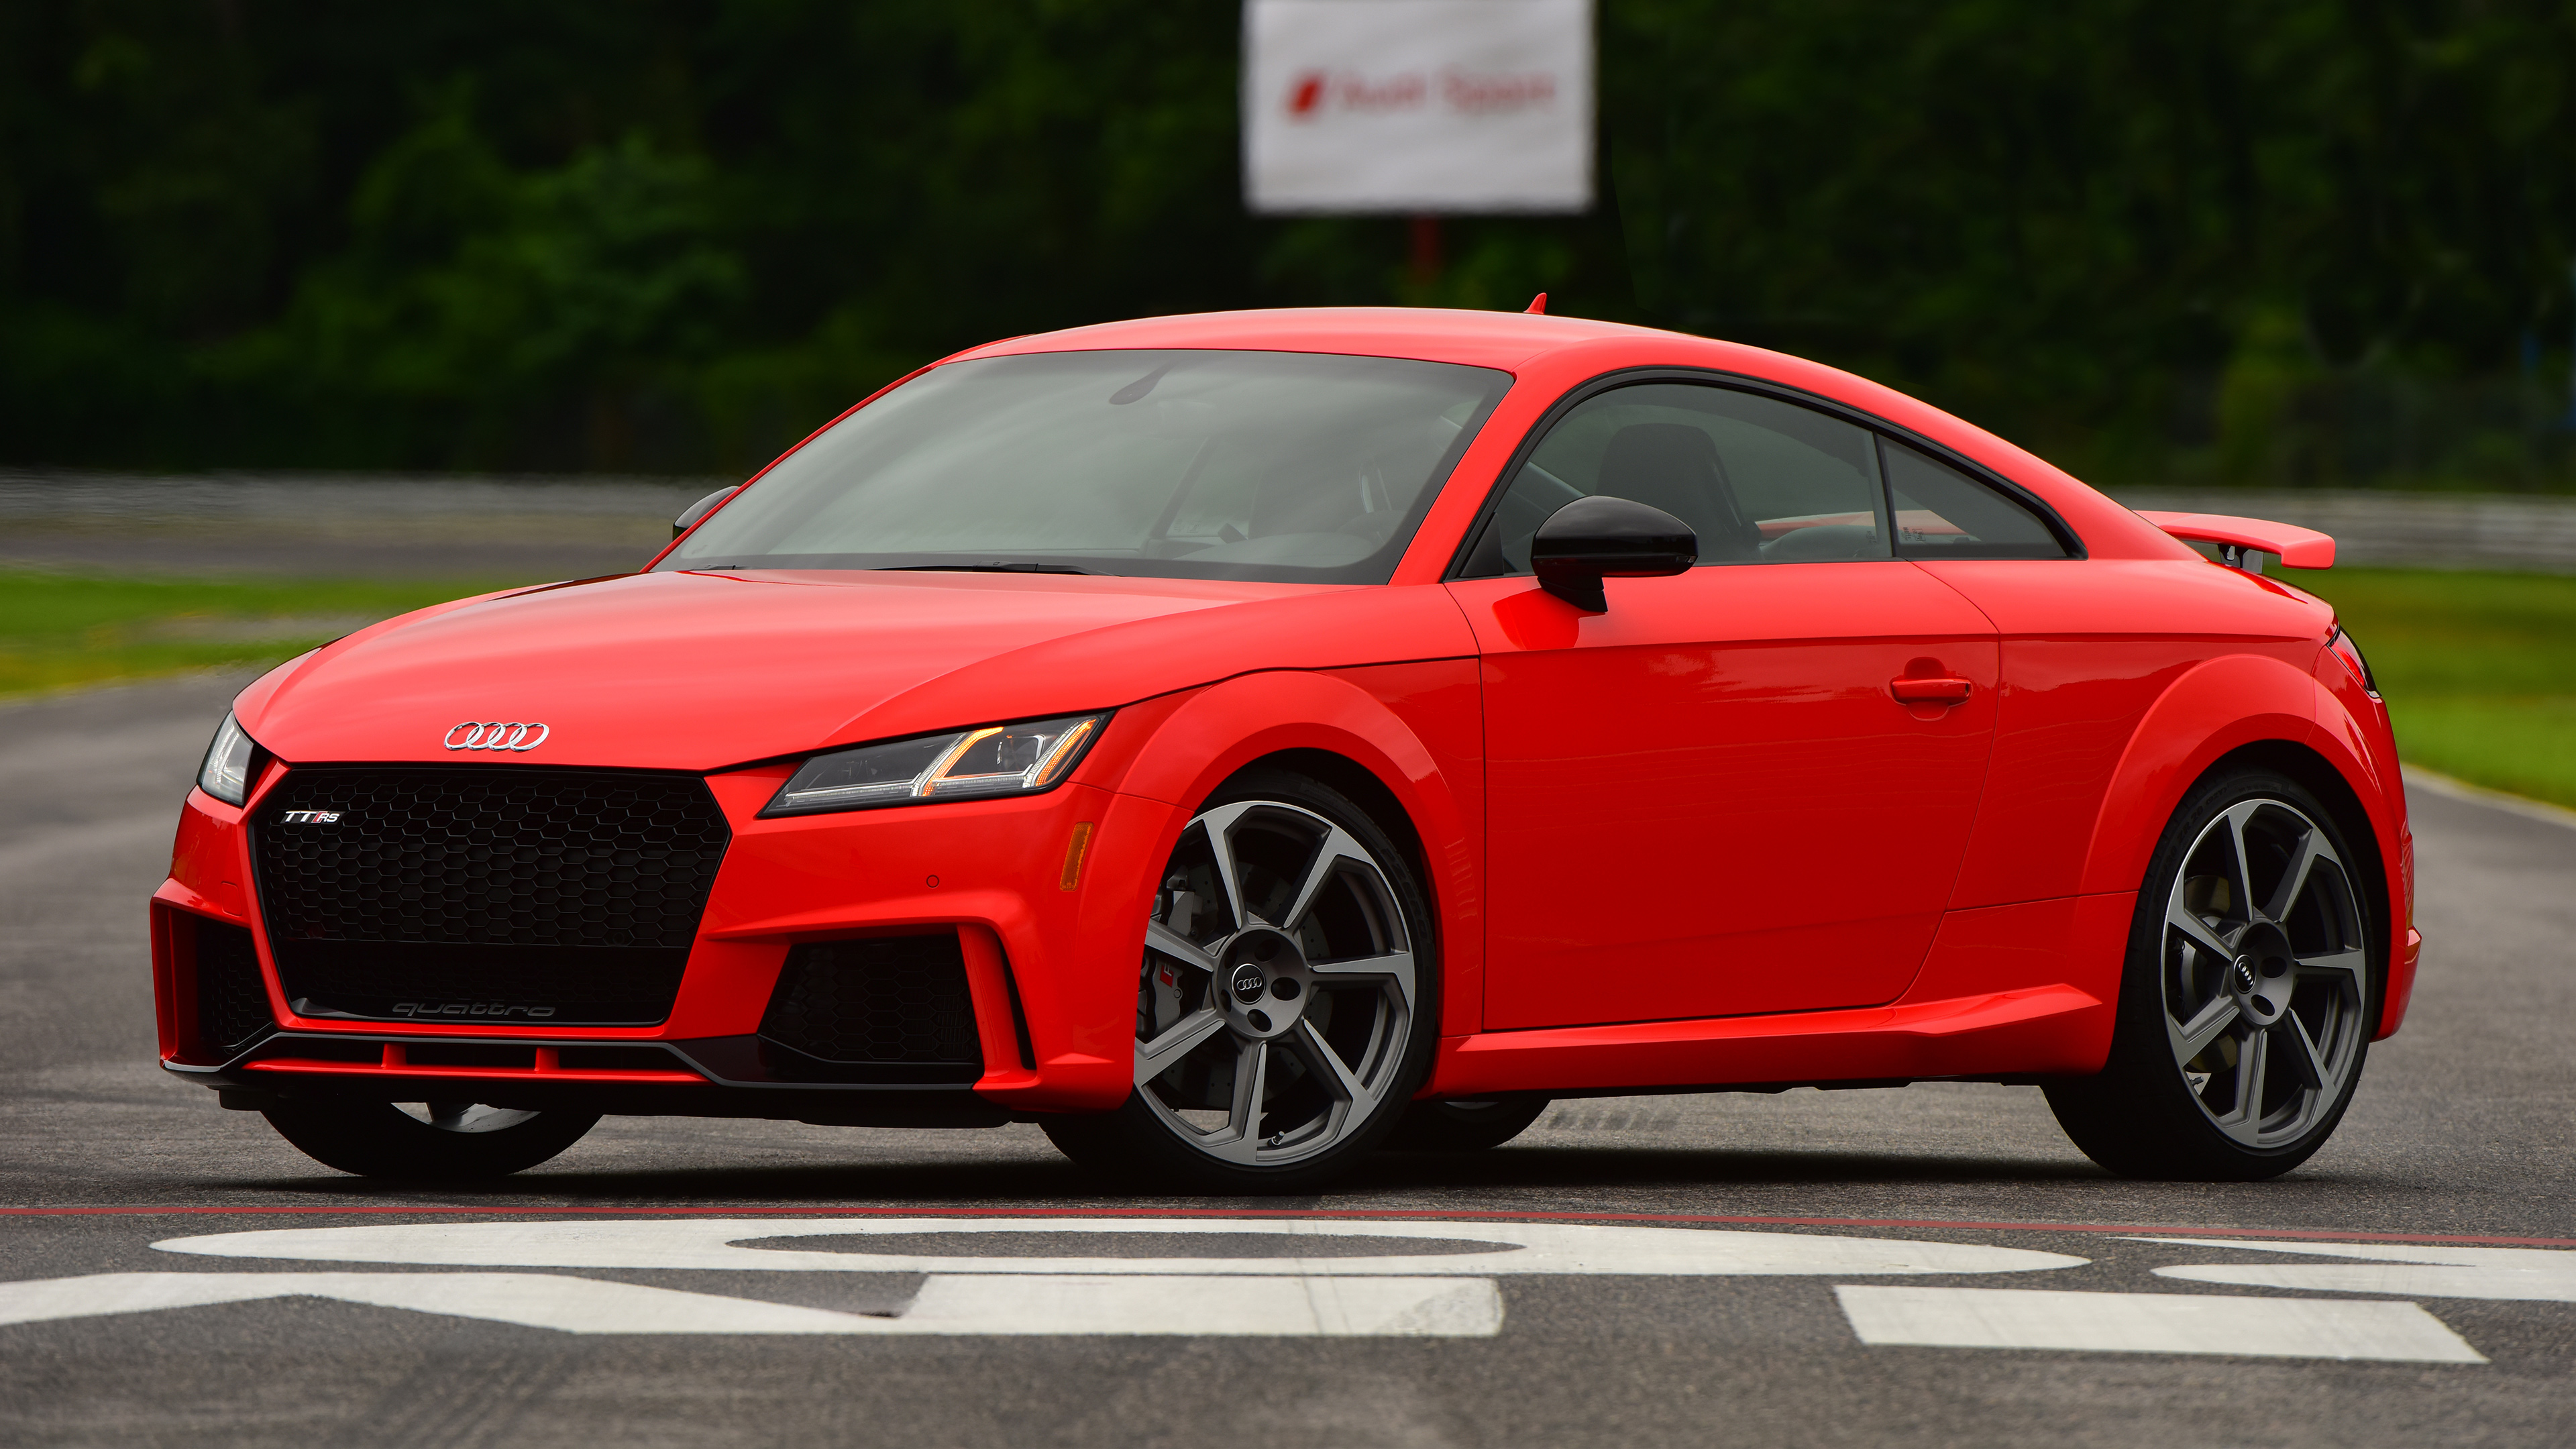 2017 audi tt rs coupe 4k wallpaper hd car wallpapers. Black Bedroom Furniture Sets. Home Design Ideas